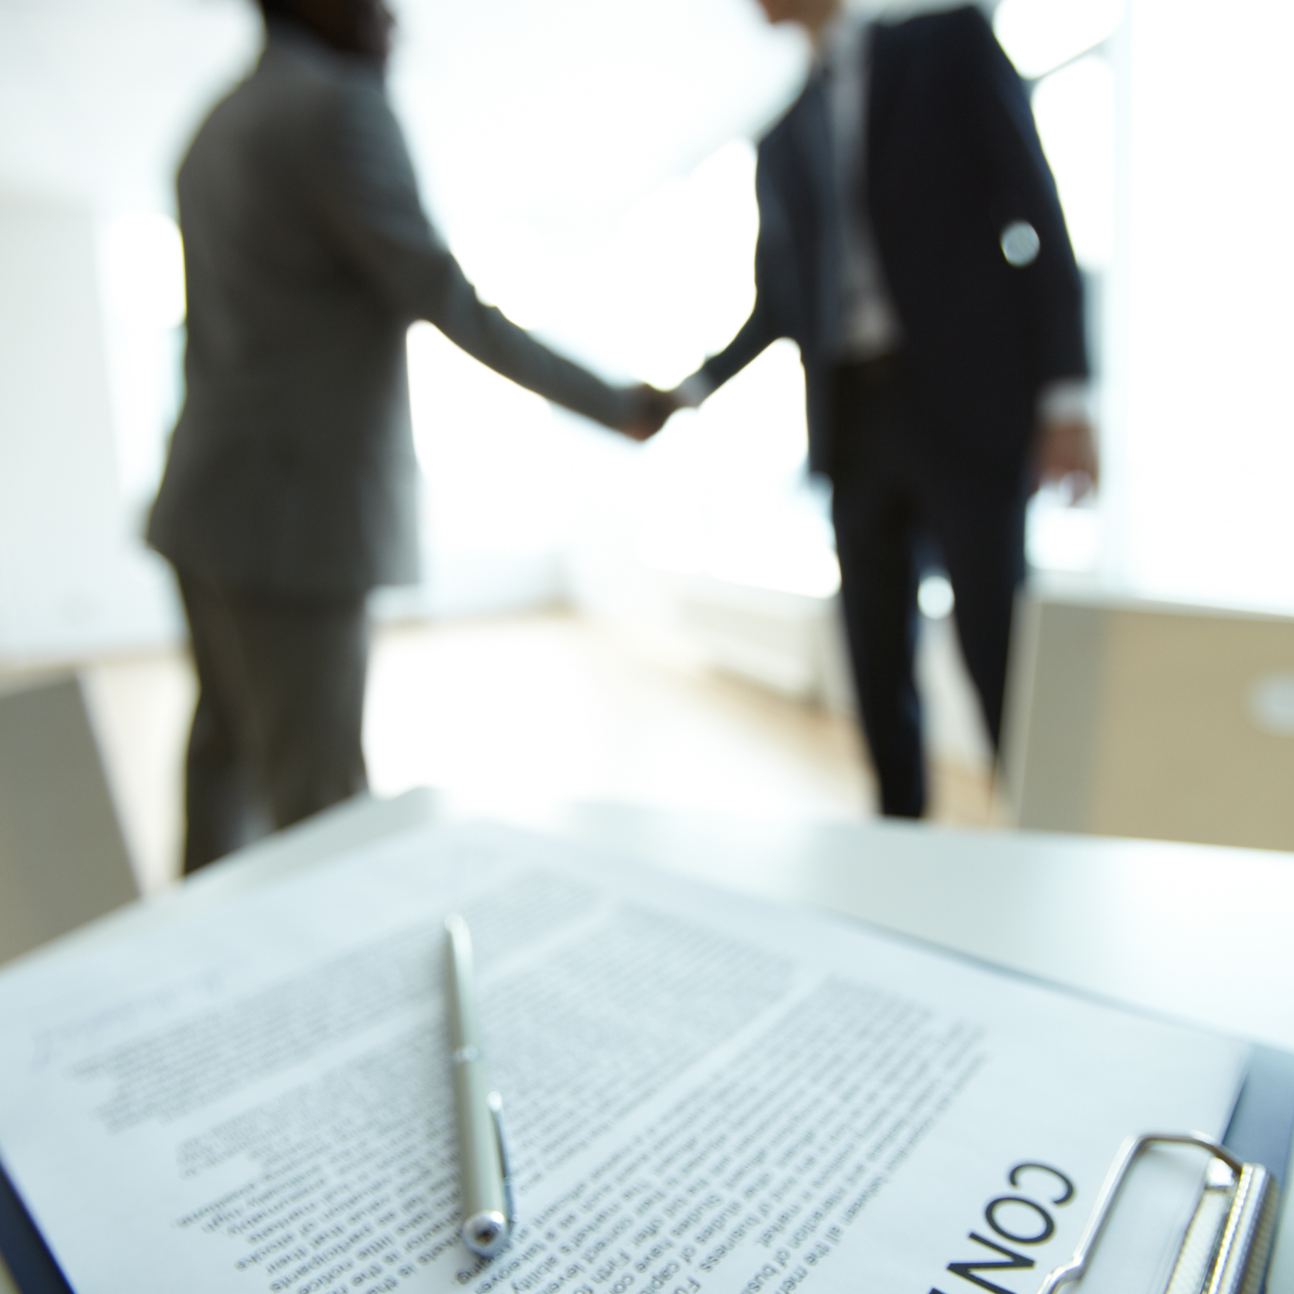 contract drafting contract negotiation business contract new york new jersey lawyer business lawyer